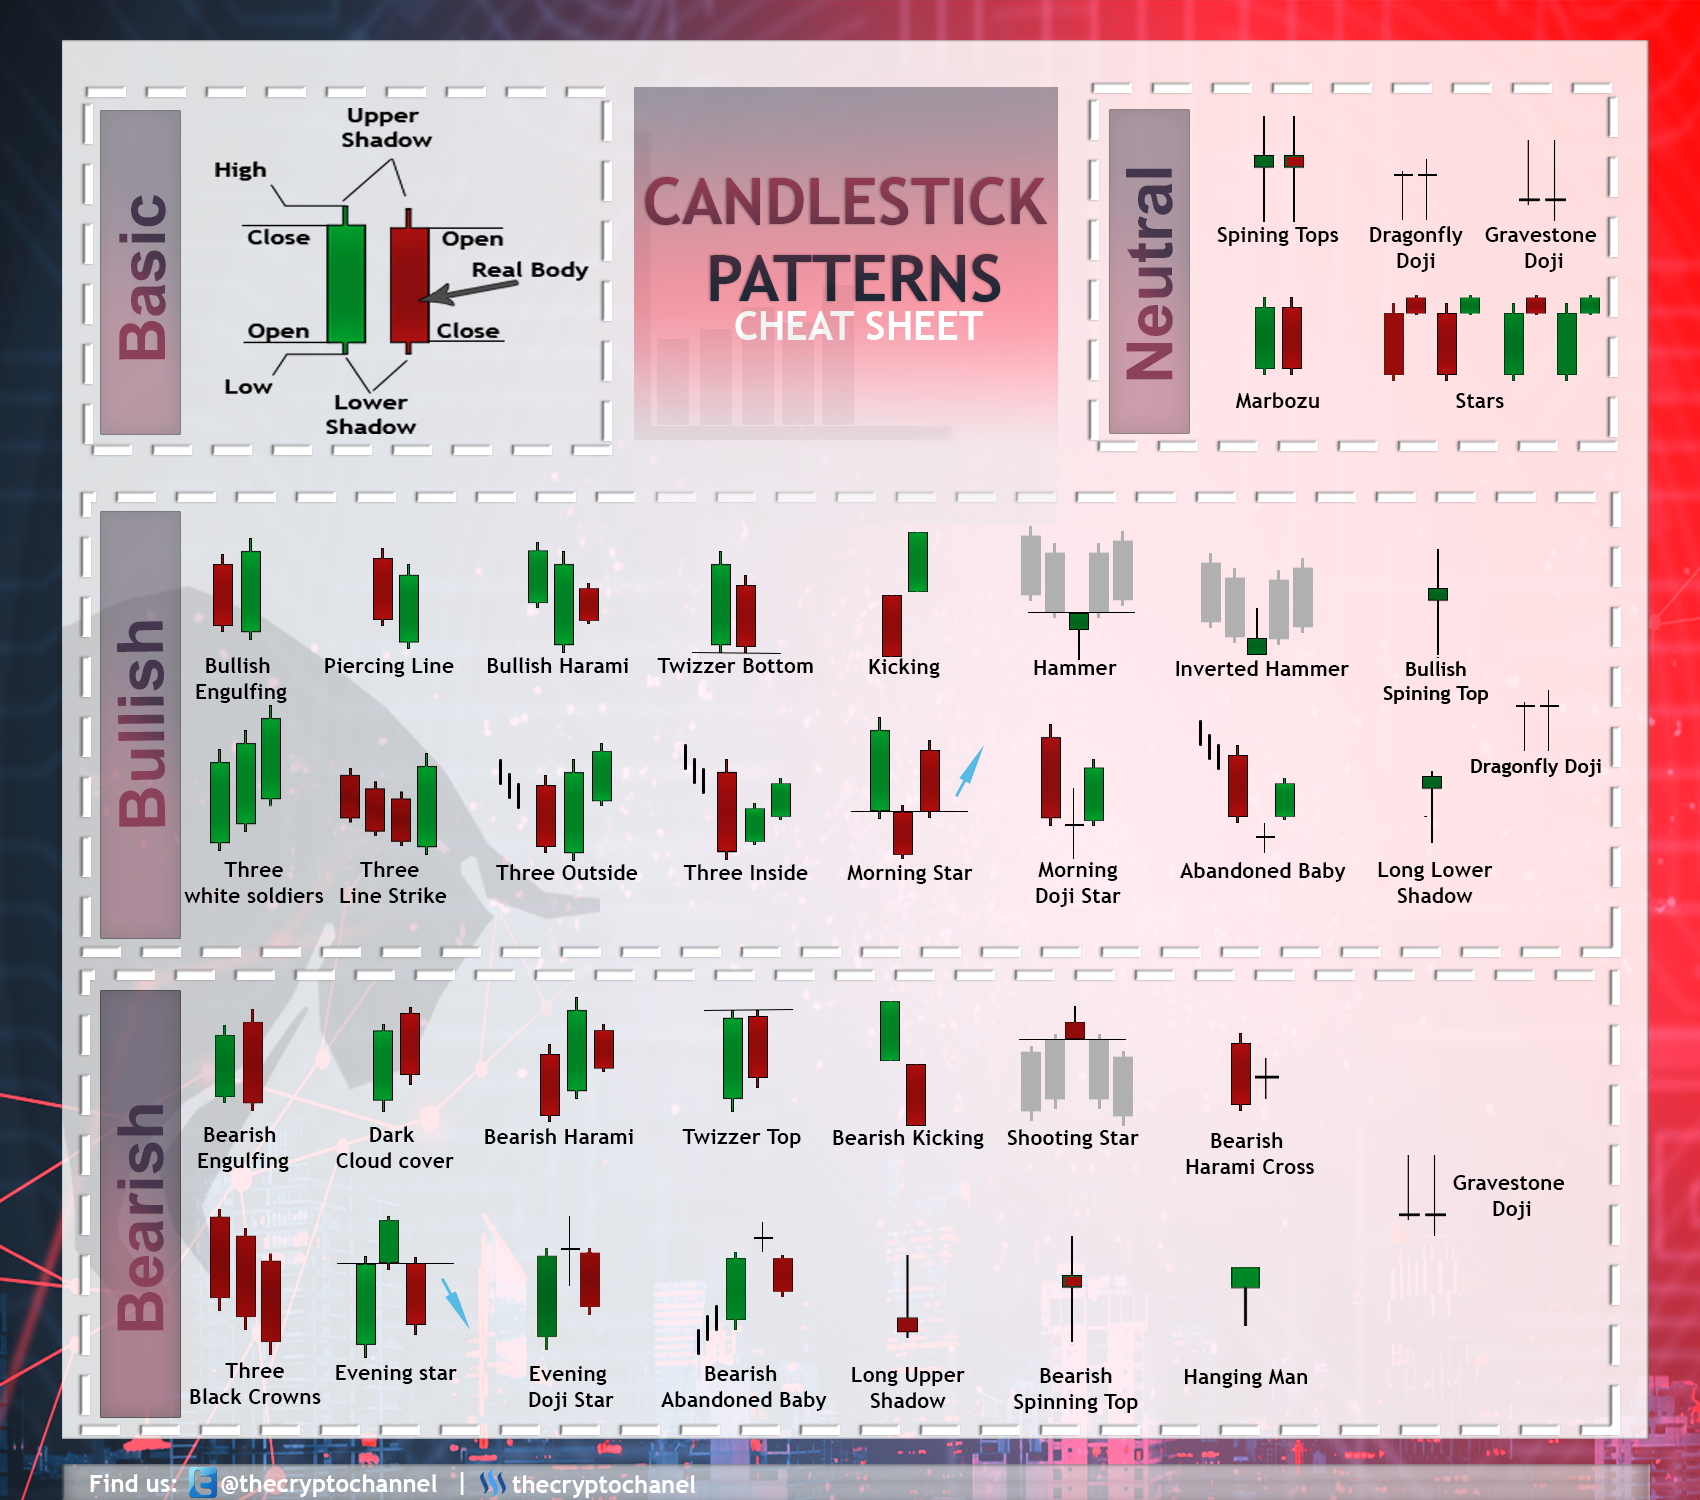 Candlesticks Patterns Cheat Sheet Top Patterns Trading Charts Candlestick Chart Trading Quotes